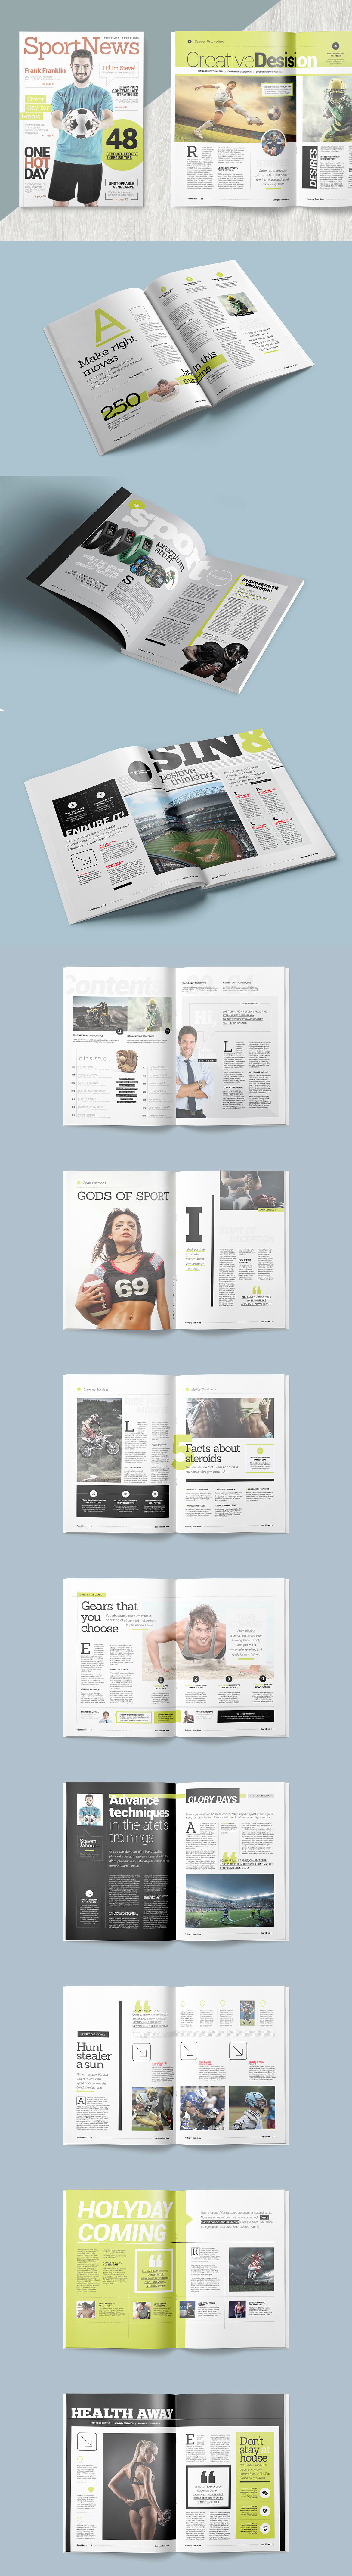 Magazine Template InDesign INDD - 25 Unique Pages | PAPEL ...